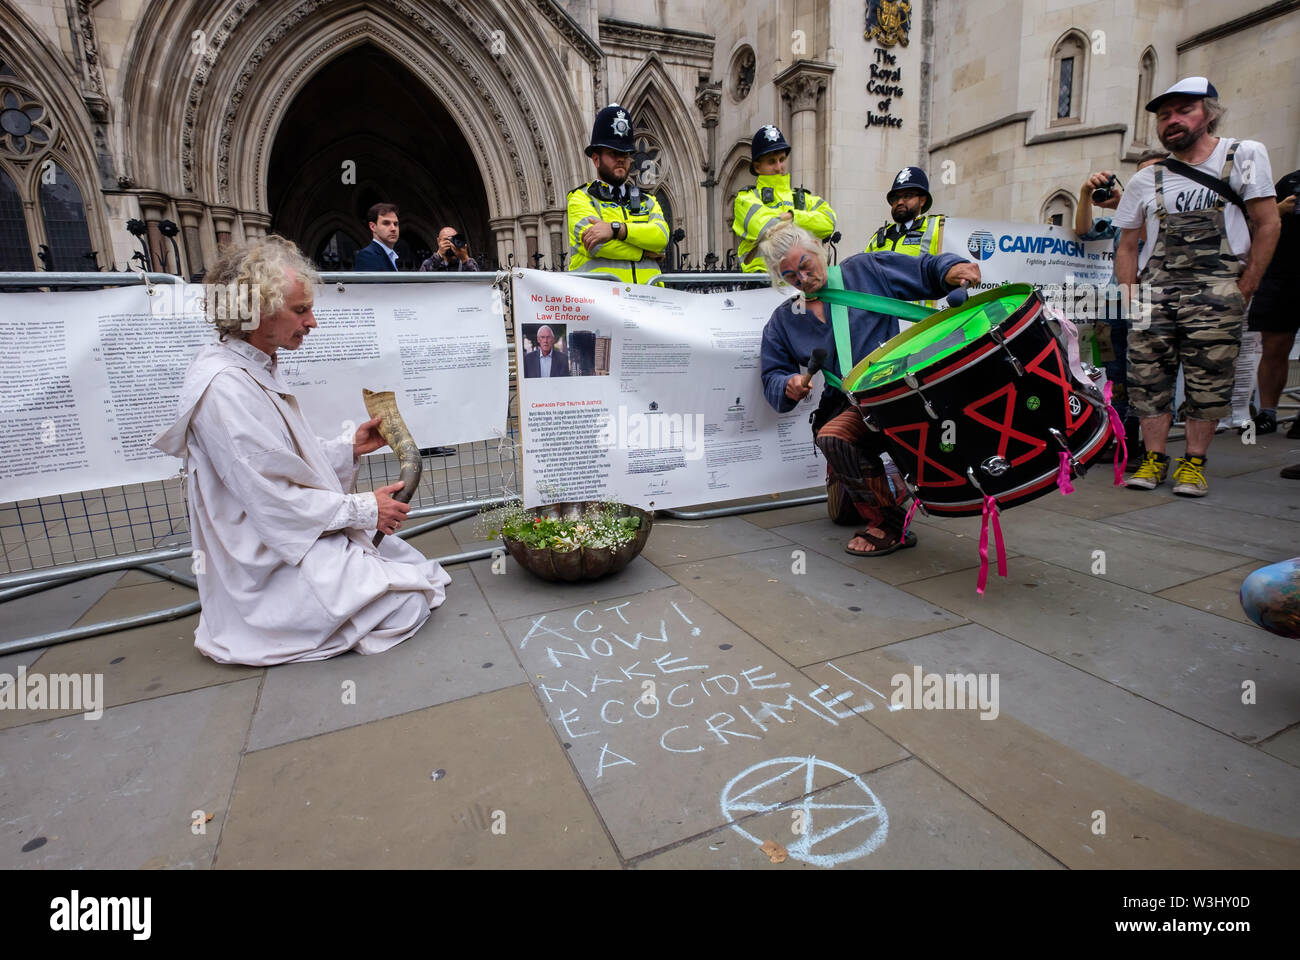 London, UK. 15th July, 2019. A druid sits with a horn in front of the courts in a ceremony against ecocide. Extinction Rebellion begins another series of protests in five major cities against the criminal inaction by the government on climate and ecological collapse. The protesters brought a yacht named after Polly Higgins who fought for years for an Ecocide Law to the Royal Courts of Justice and continued her fight blocking the Strand all day with performances, discussions, speeches, music and ceremonies in front of the yacht. Credit: Peter Marshall/Alamy Live News - Stock Image